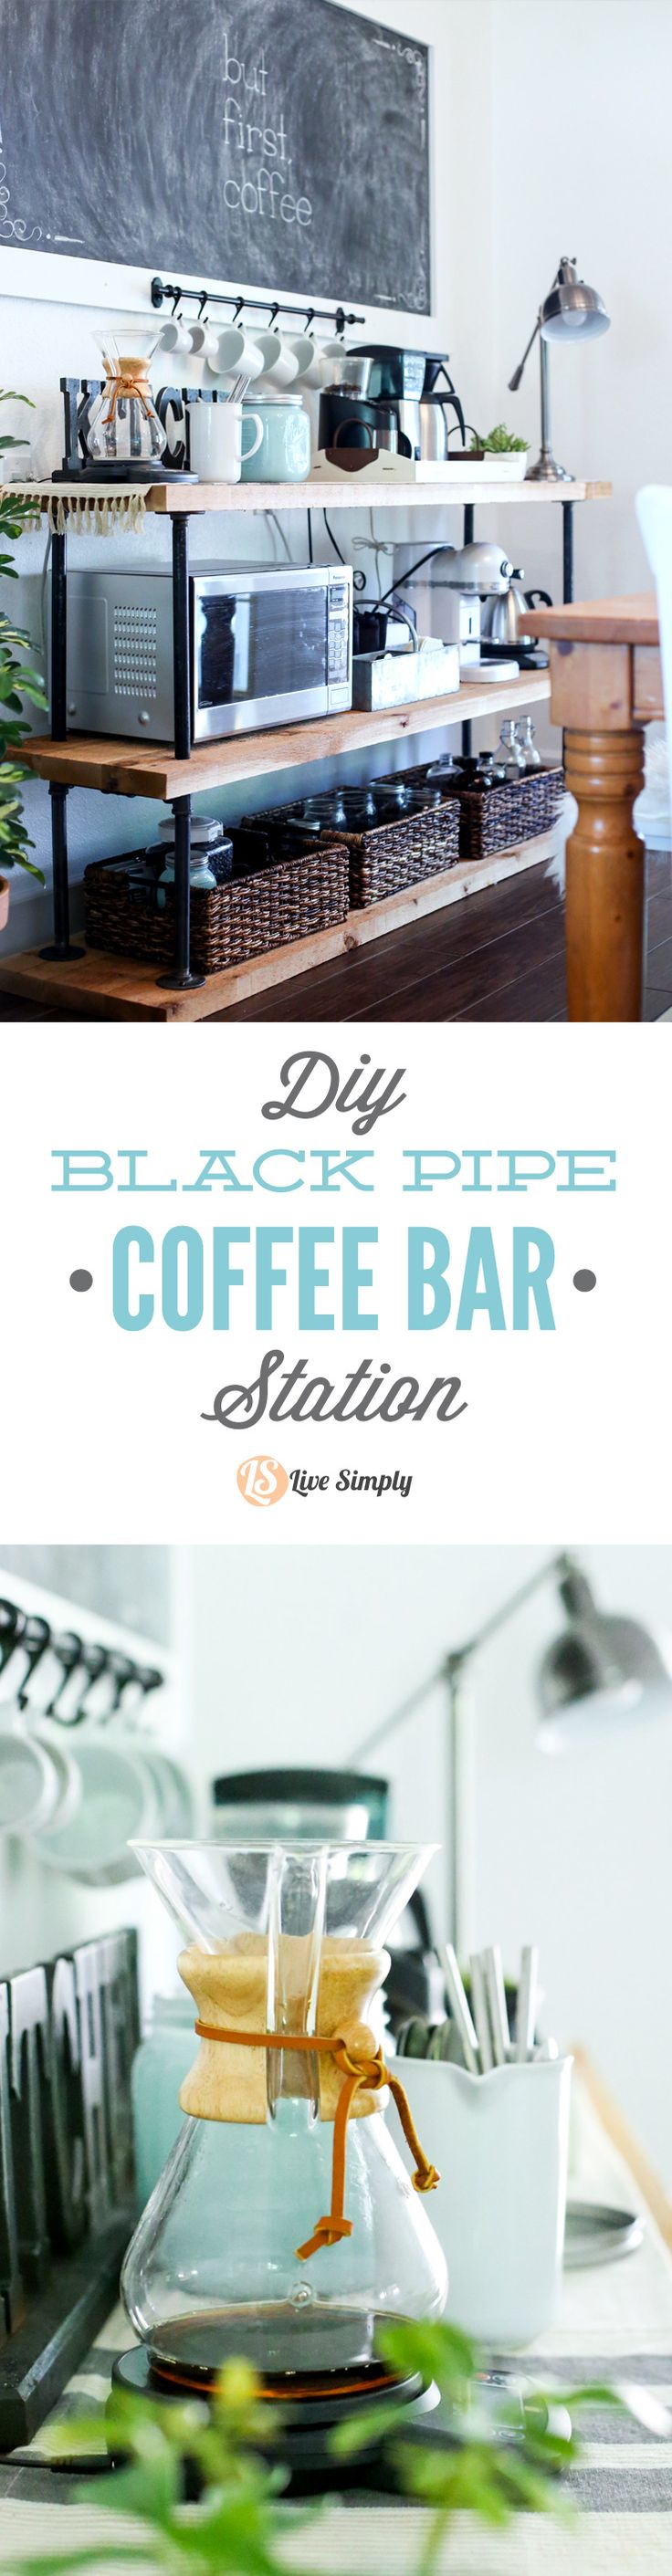 Build your own coffee bar! This project is made with industrial-style black pipes and wood–that's it! Get that classic coffee bar